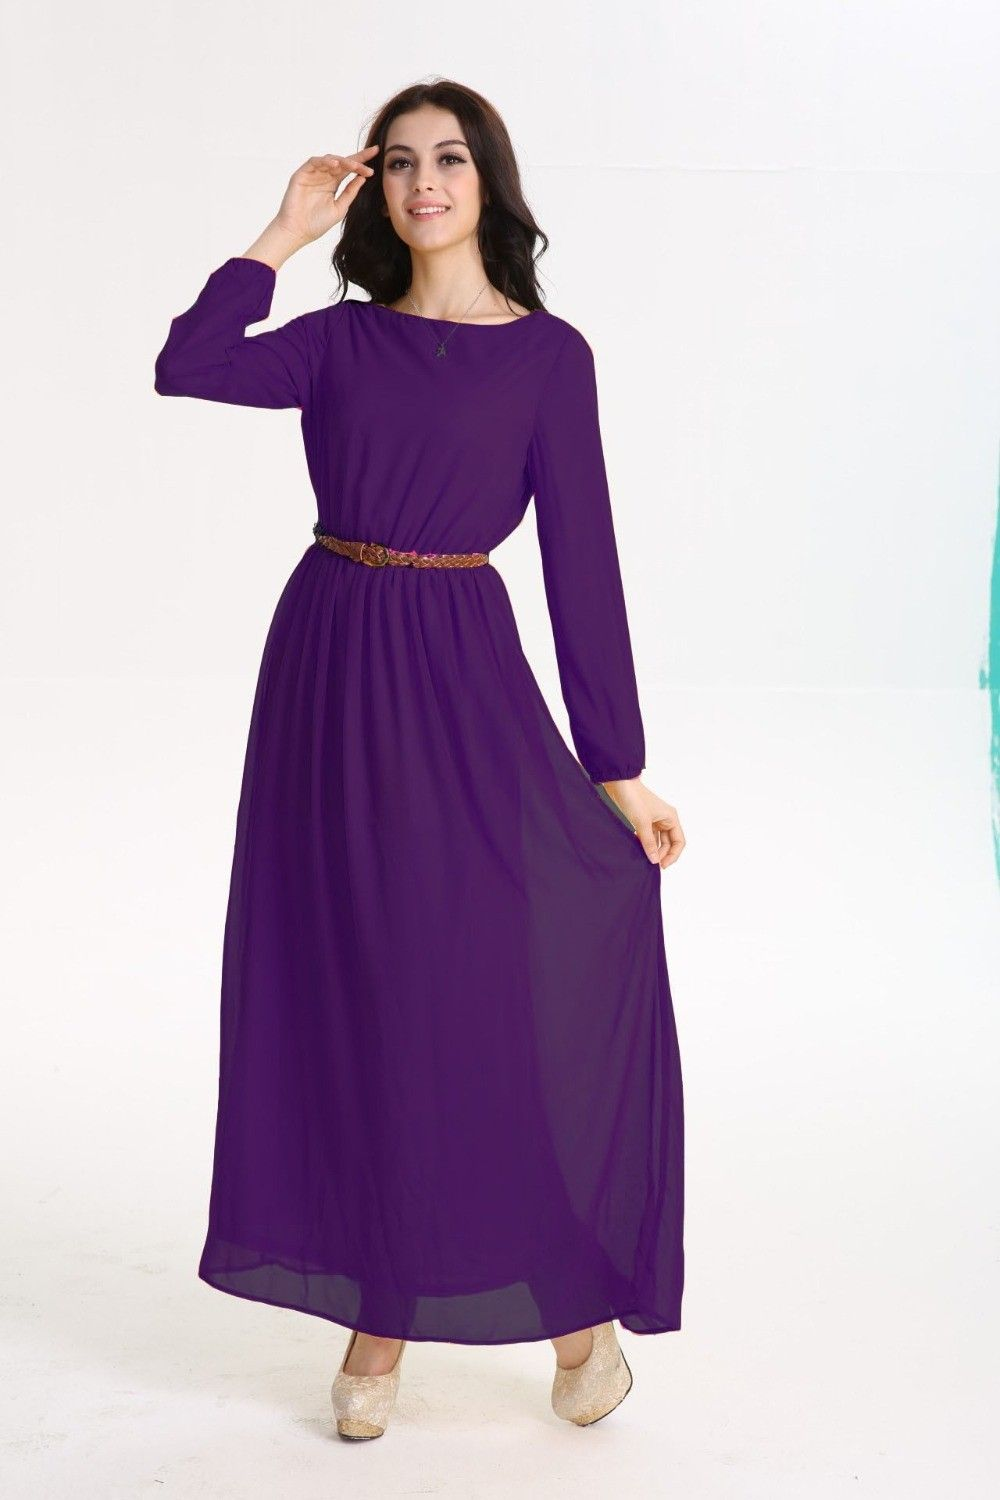 Newest collection about long sleeve maxi dress chiffon u maxi